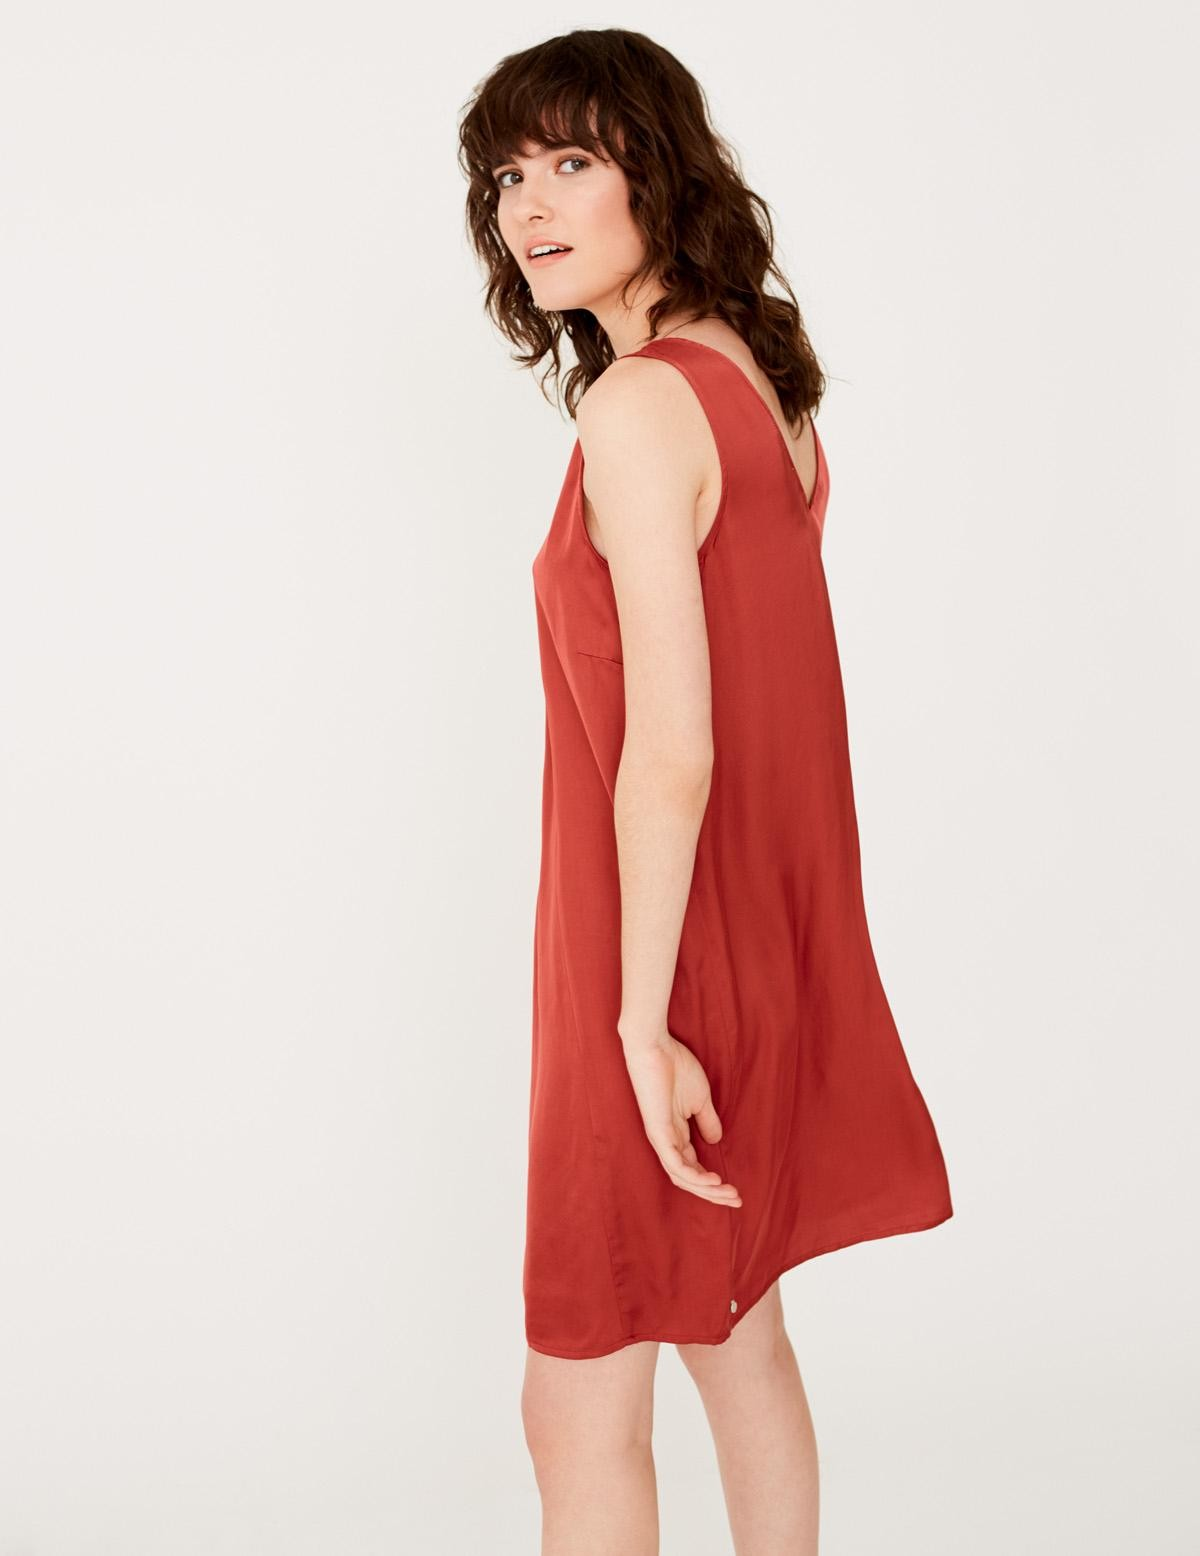 Strap dress with V-neckline - Item2